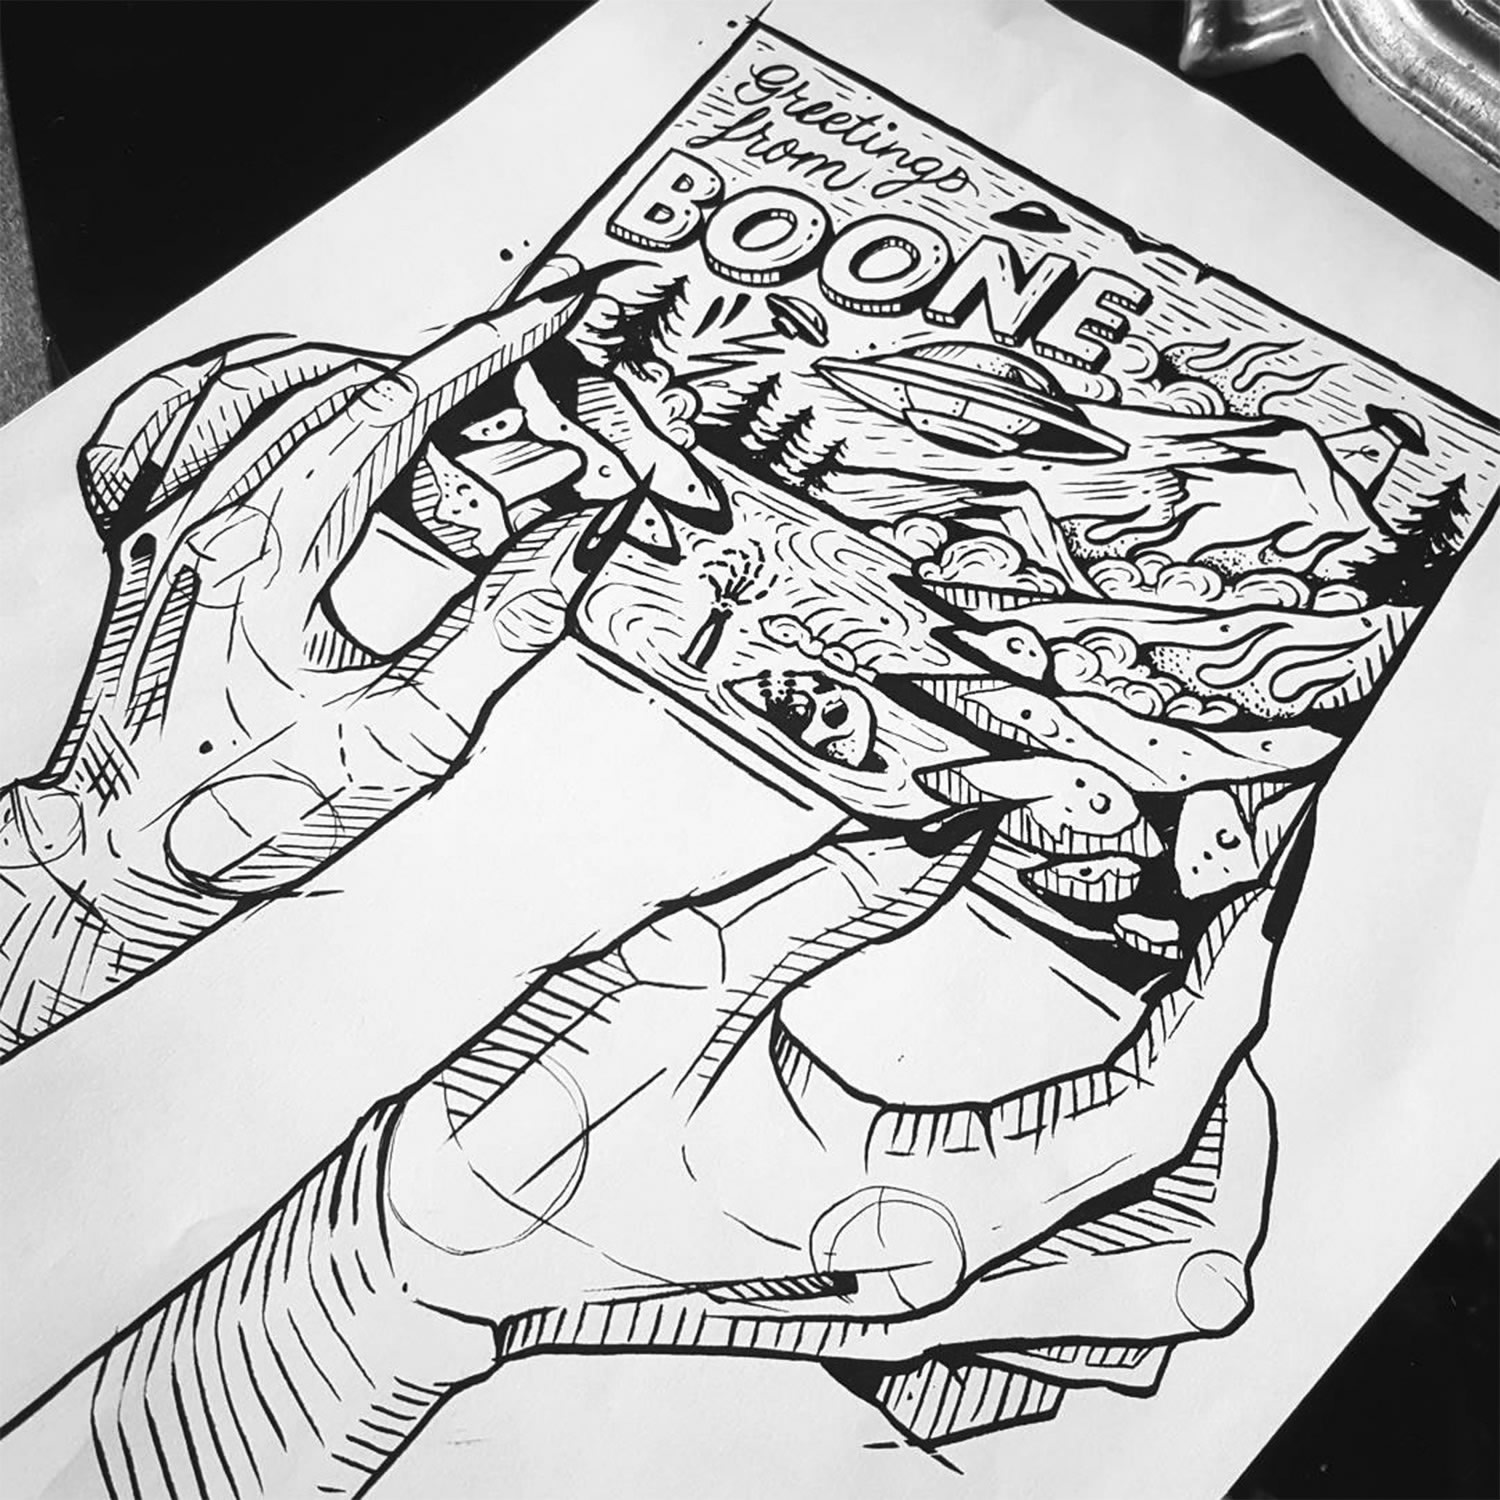 hands, drawing in black and white, comic style